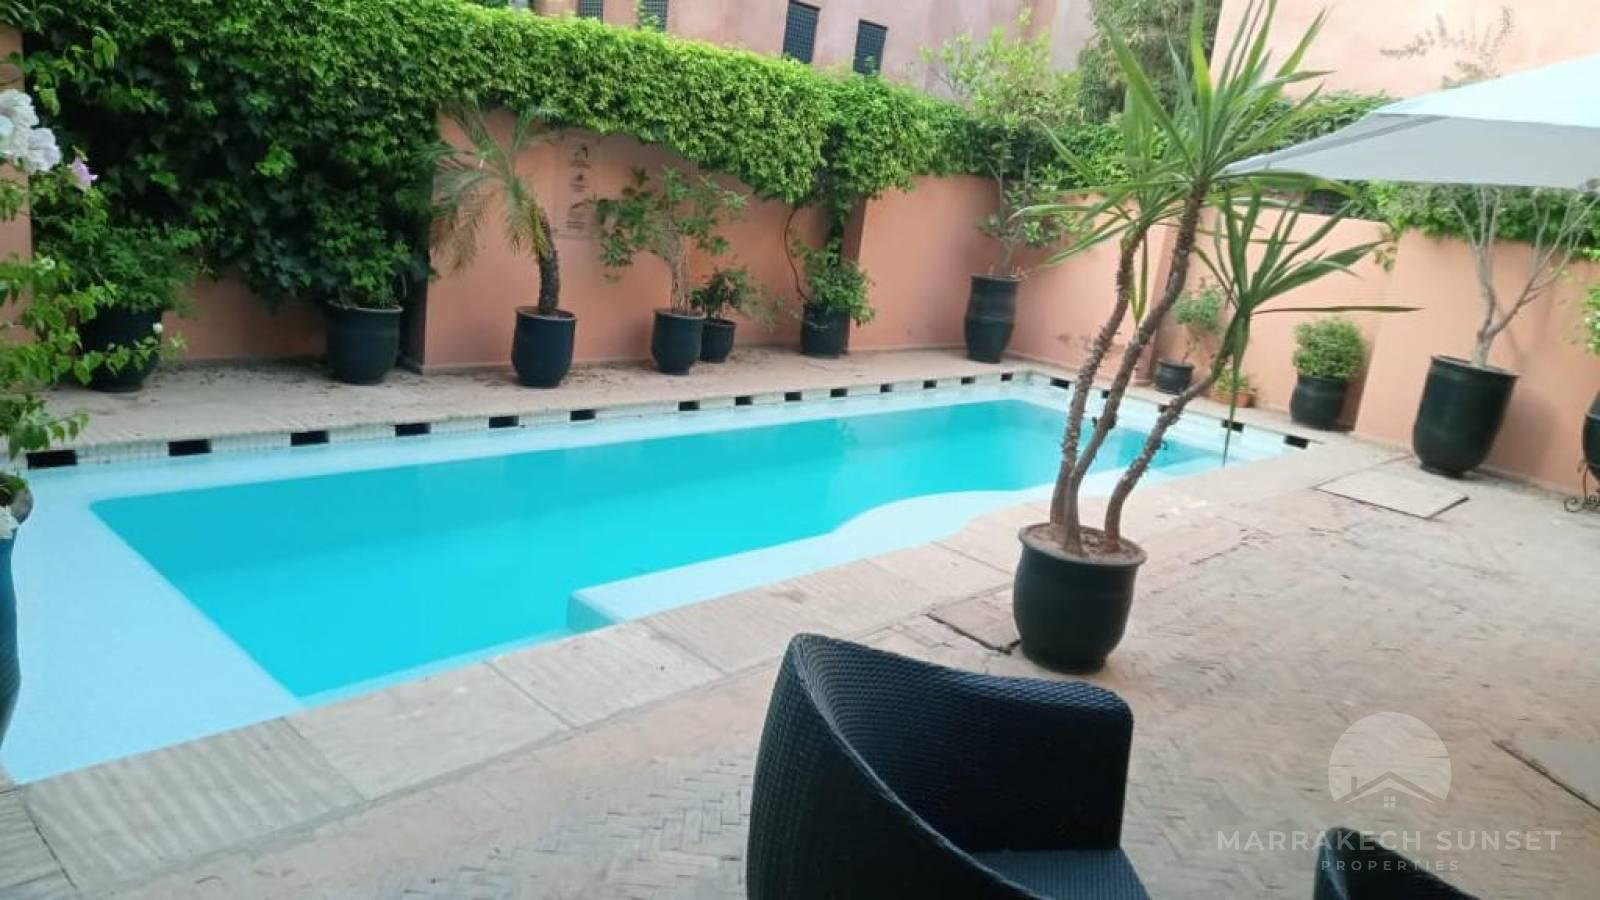 4 bedroom villa for rent at the Naoura Barrière hotel complex